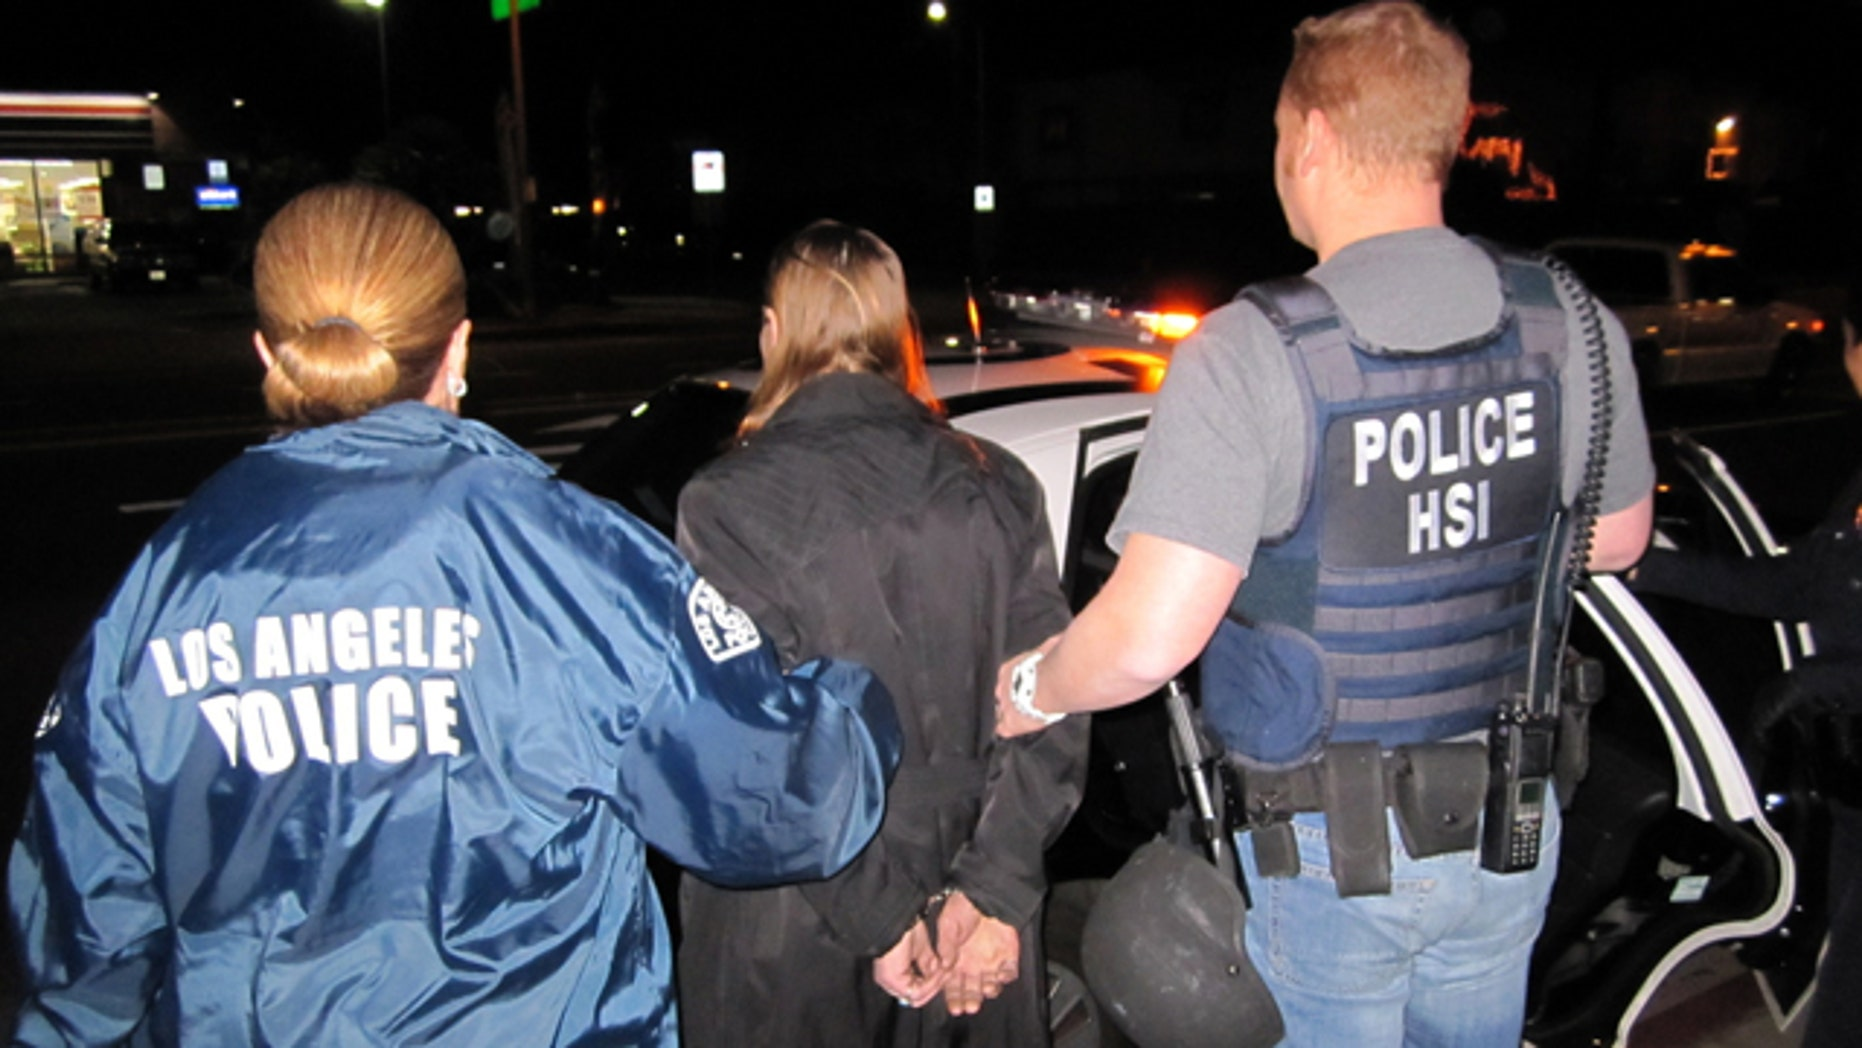 Jan. 4, 2013: In this image provided by U.S. Immigration and Customs Enforcement (ICE), Letha Mae Montemayor, is arrested on suspicion of child pornography charges in Los Angeles.